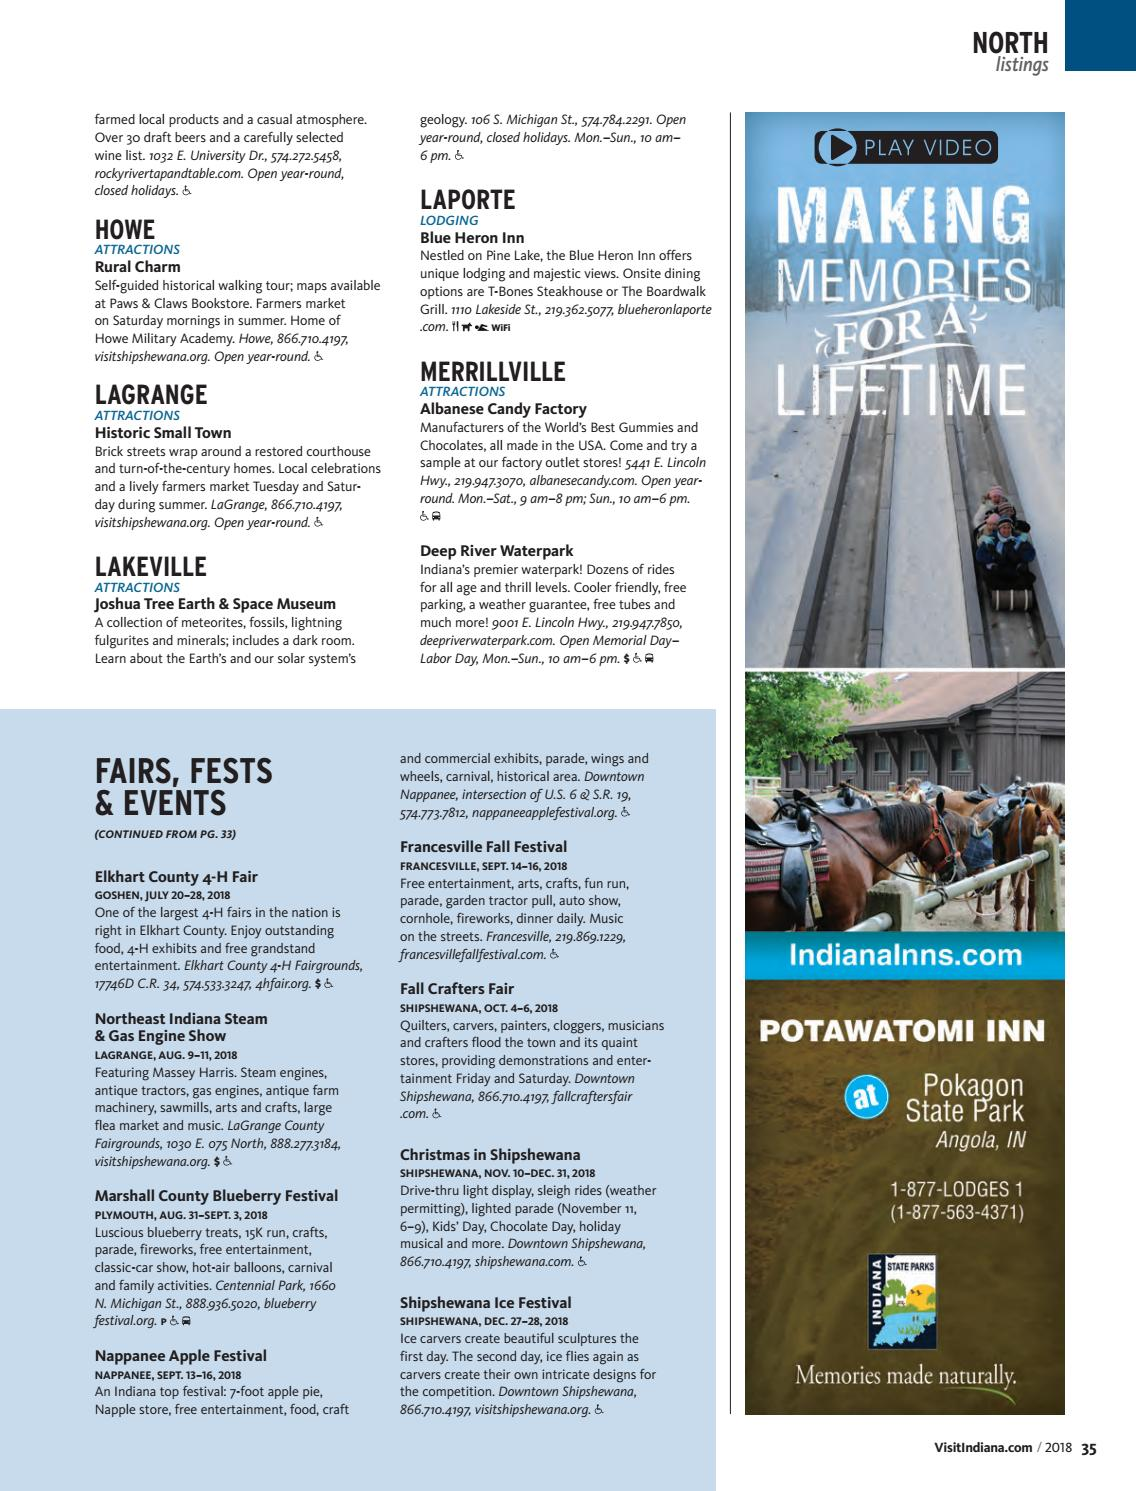 Indiana Travel Guide 2018 by Propeller Marketing - issuu